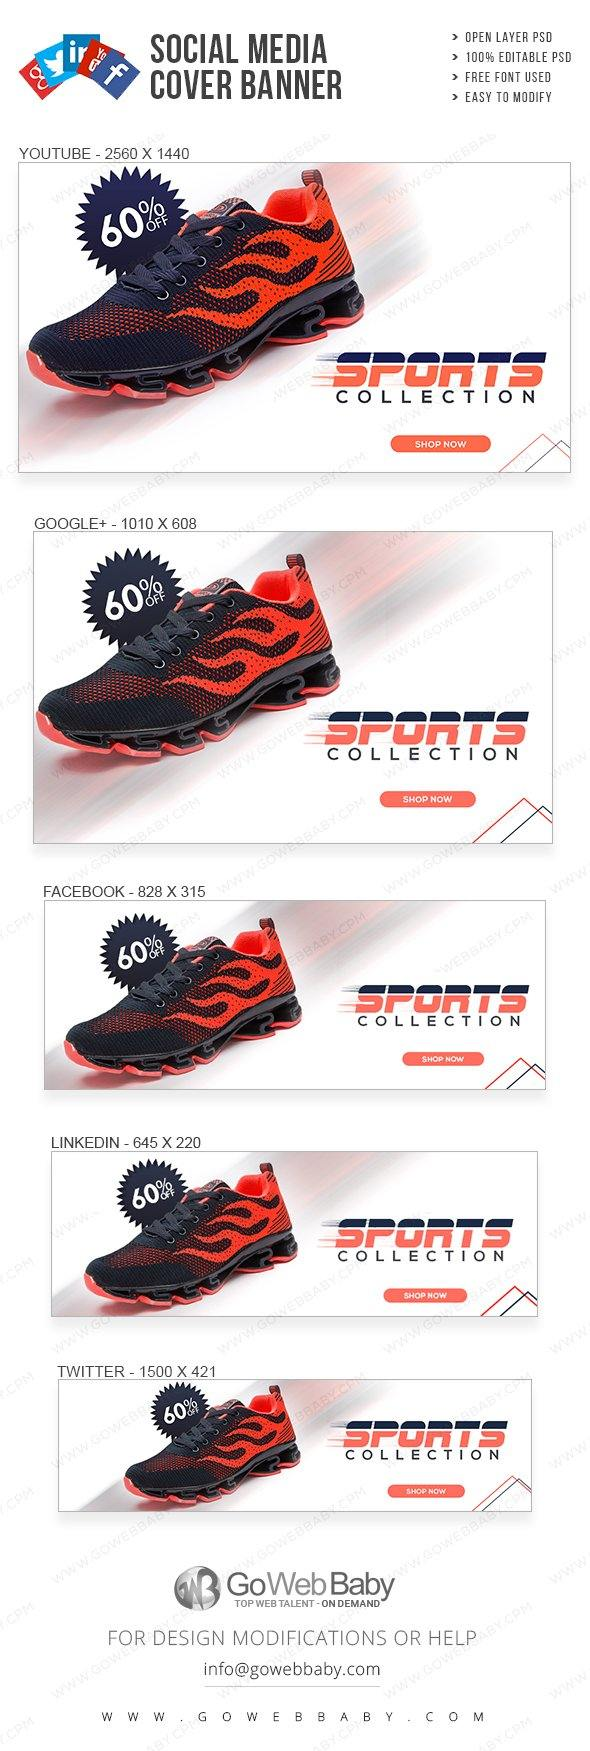 Social Media Cover Banner - Sports Footwear For Website Marketing